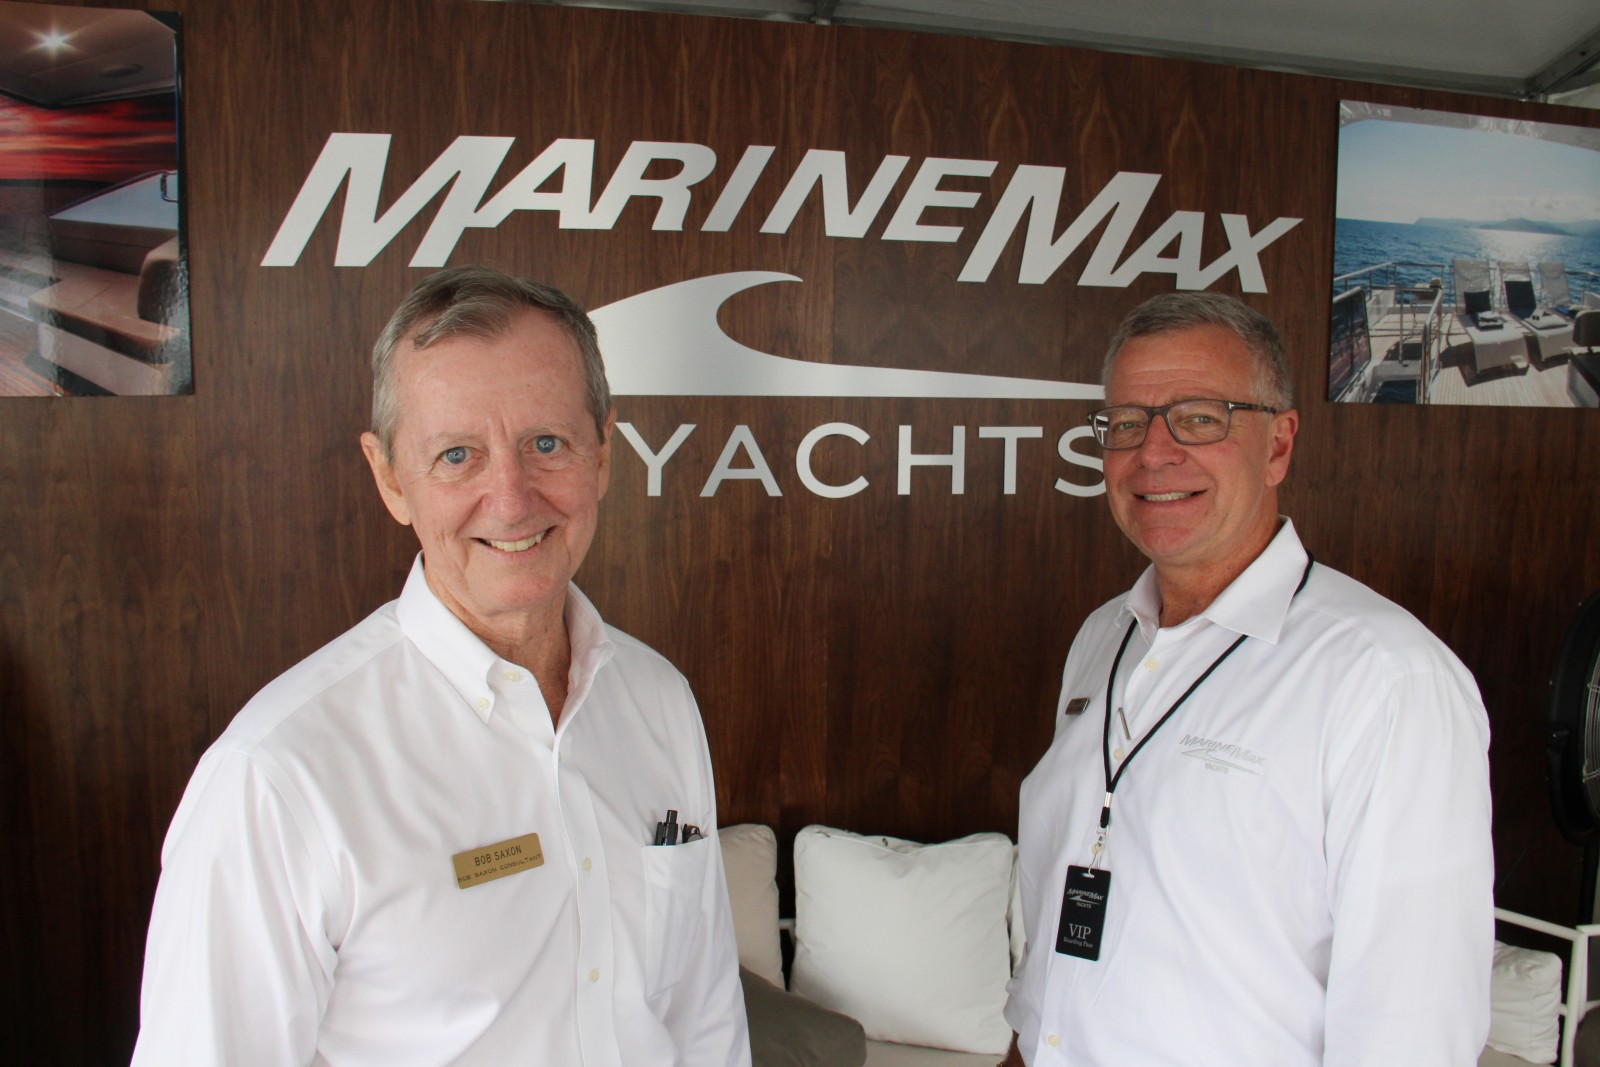 Bob Saxon, left, is welcomed aboard by Chuck Cashman of MarineMax. Photo by Suzette Cook